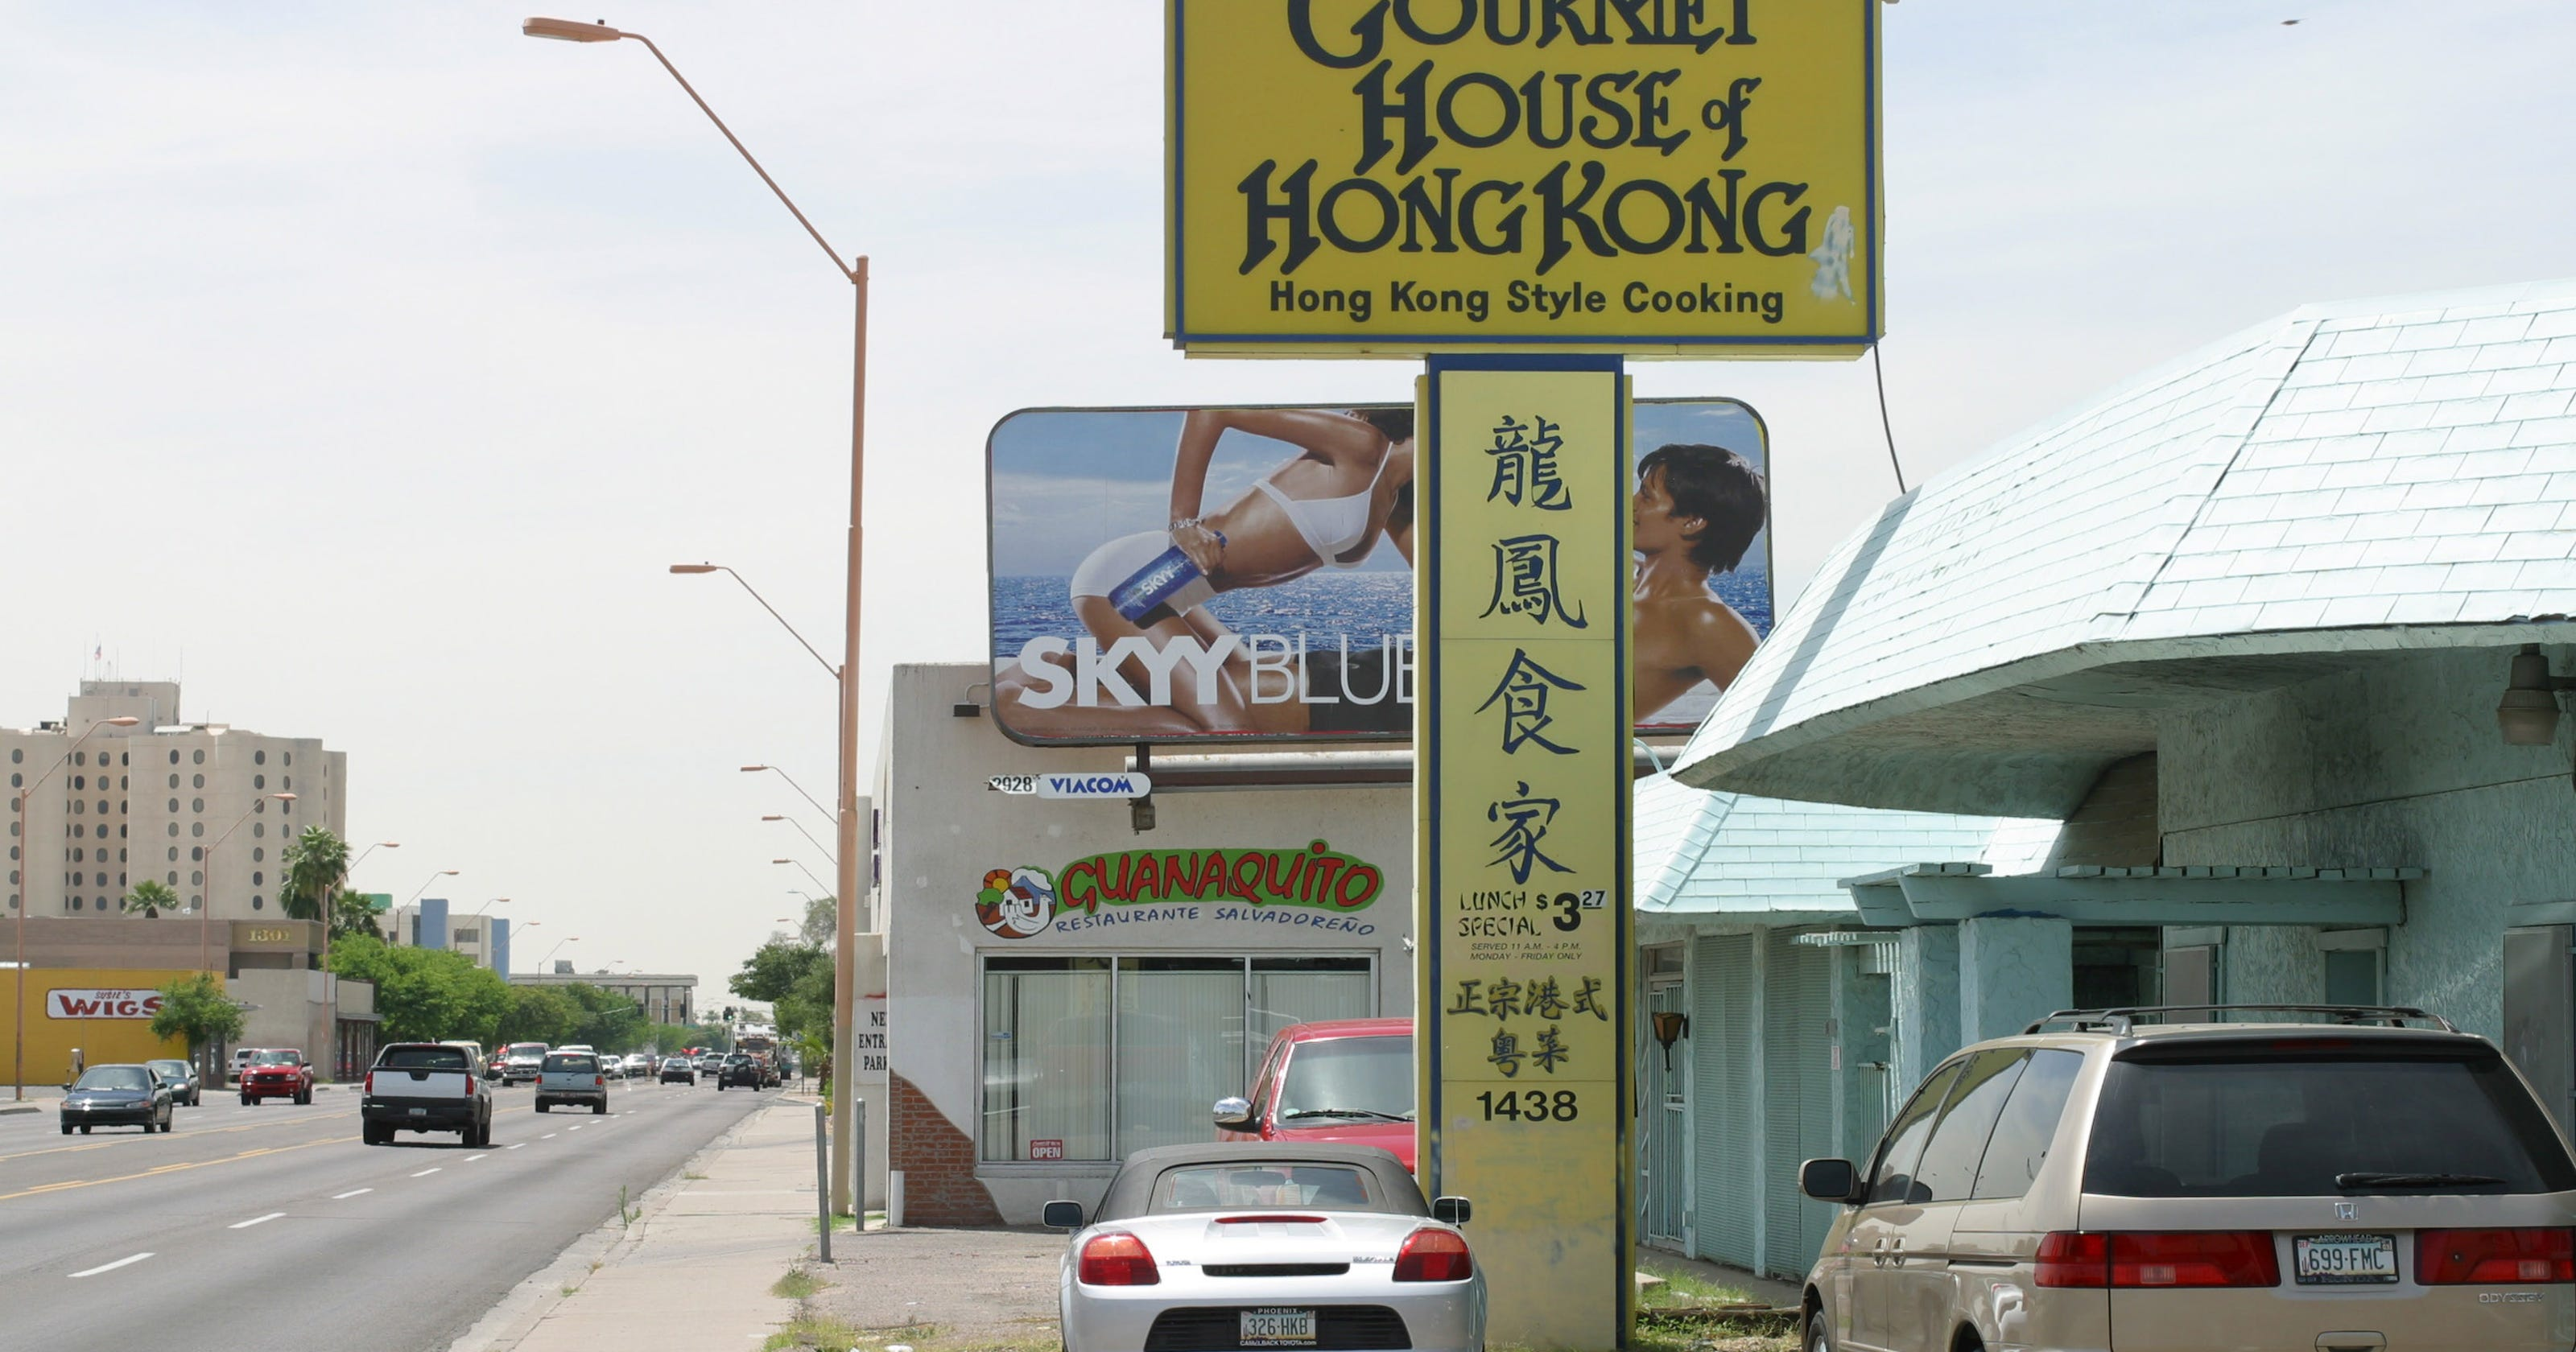 3 classic Chinese restaurants have closed, including Golden